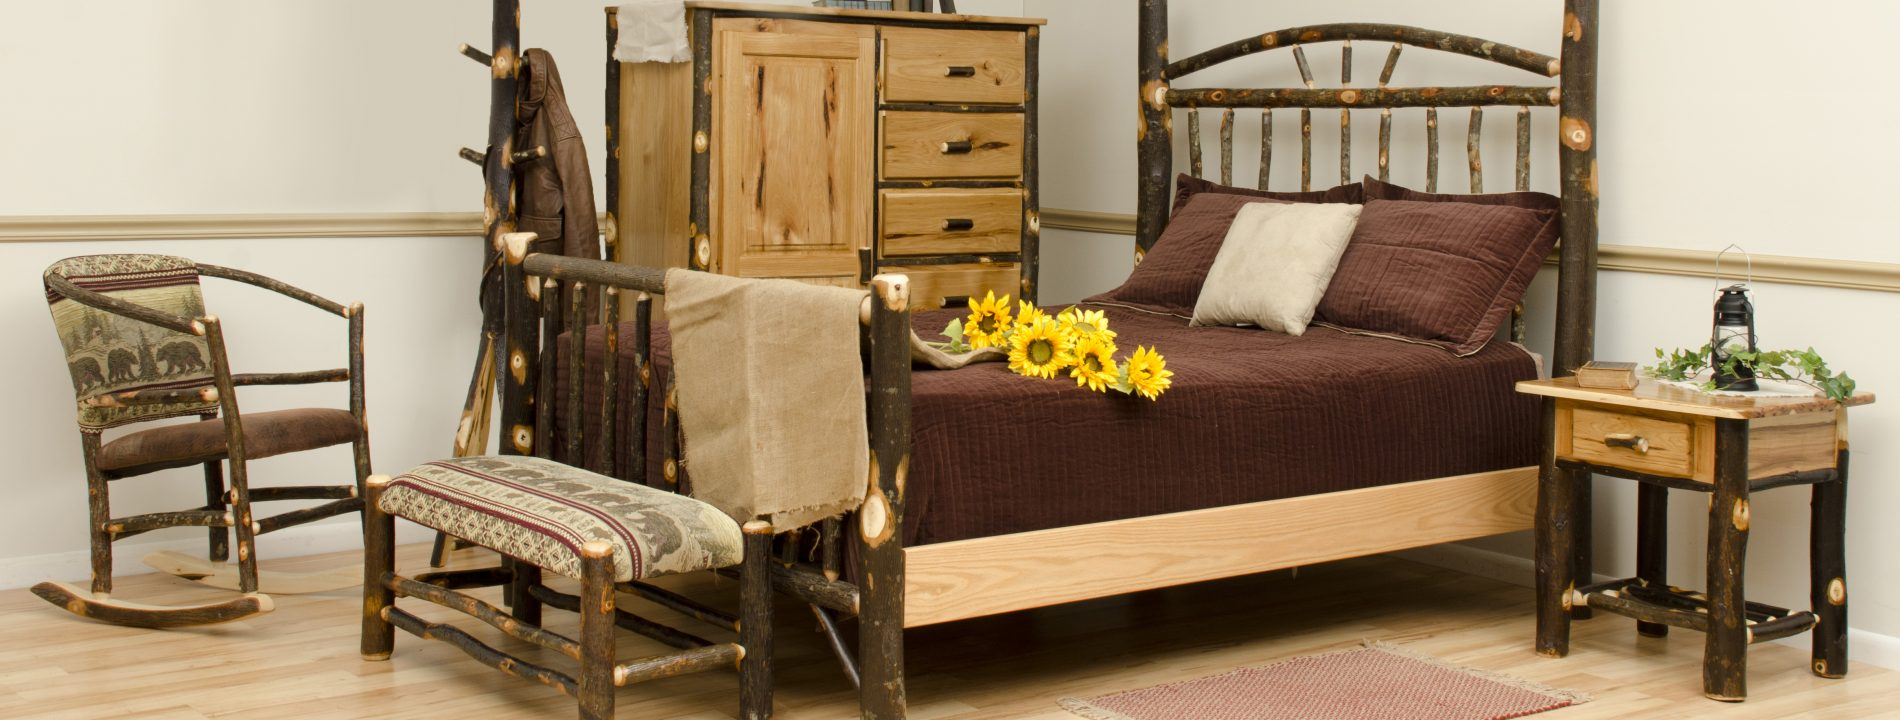 rustic cabin bedroom furniture